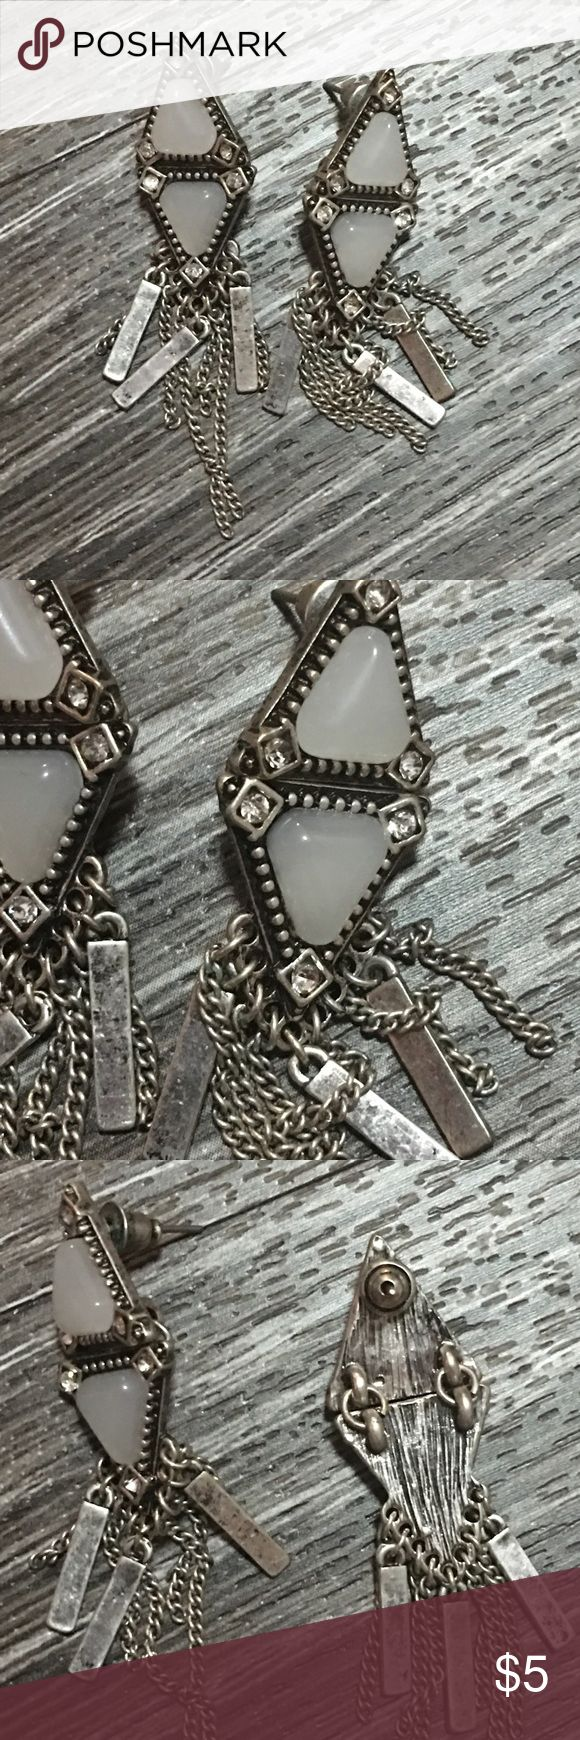 Chic Forever 21 Festival Earrings NWOT Love these earrings, but they are never worn! The antiquing finish is perfect to add edge to any look! Forever 21 Jewelry Earrings